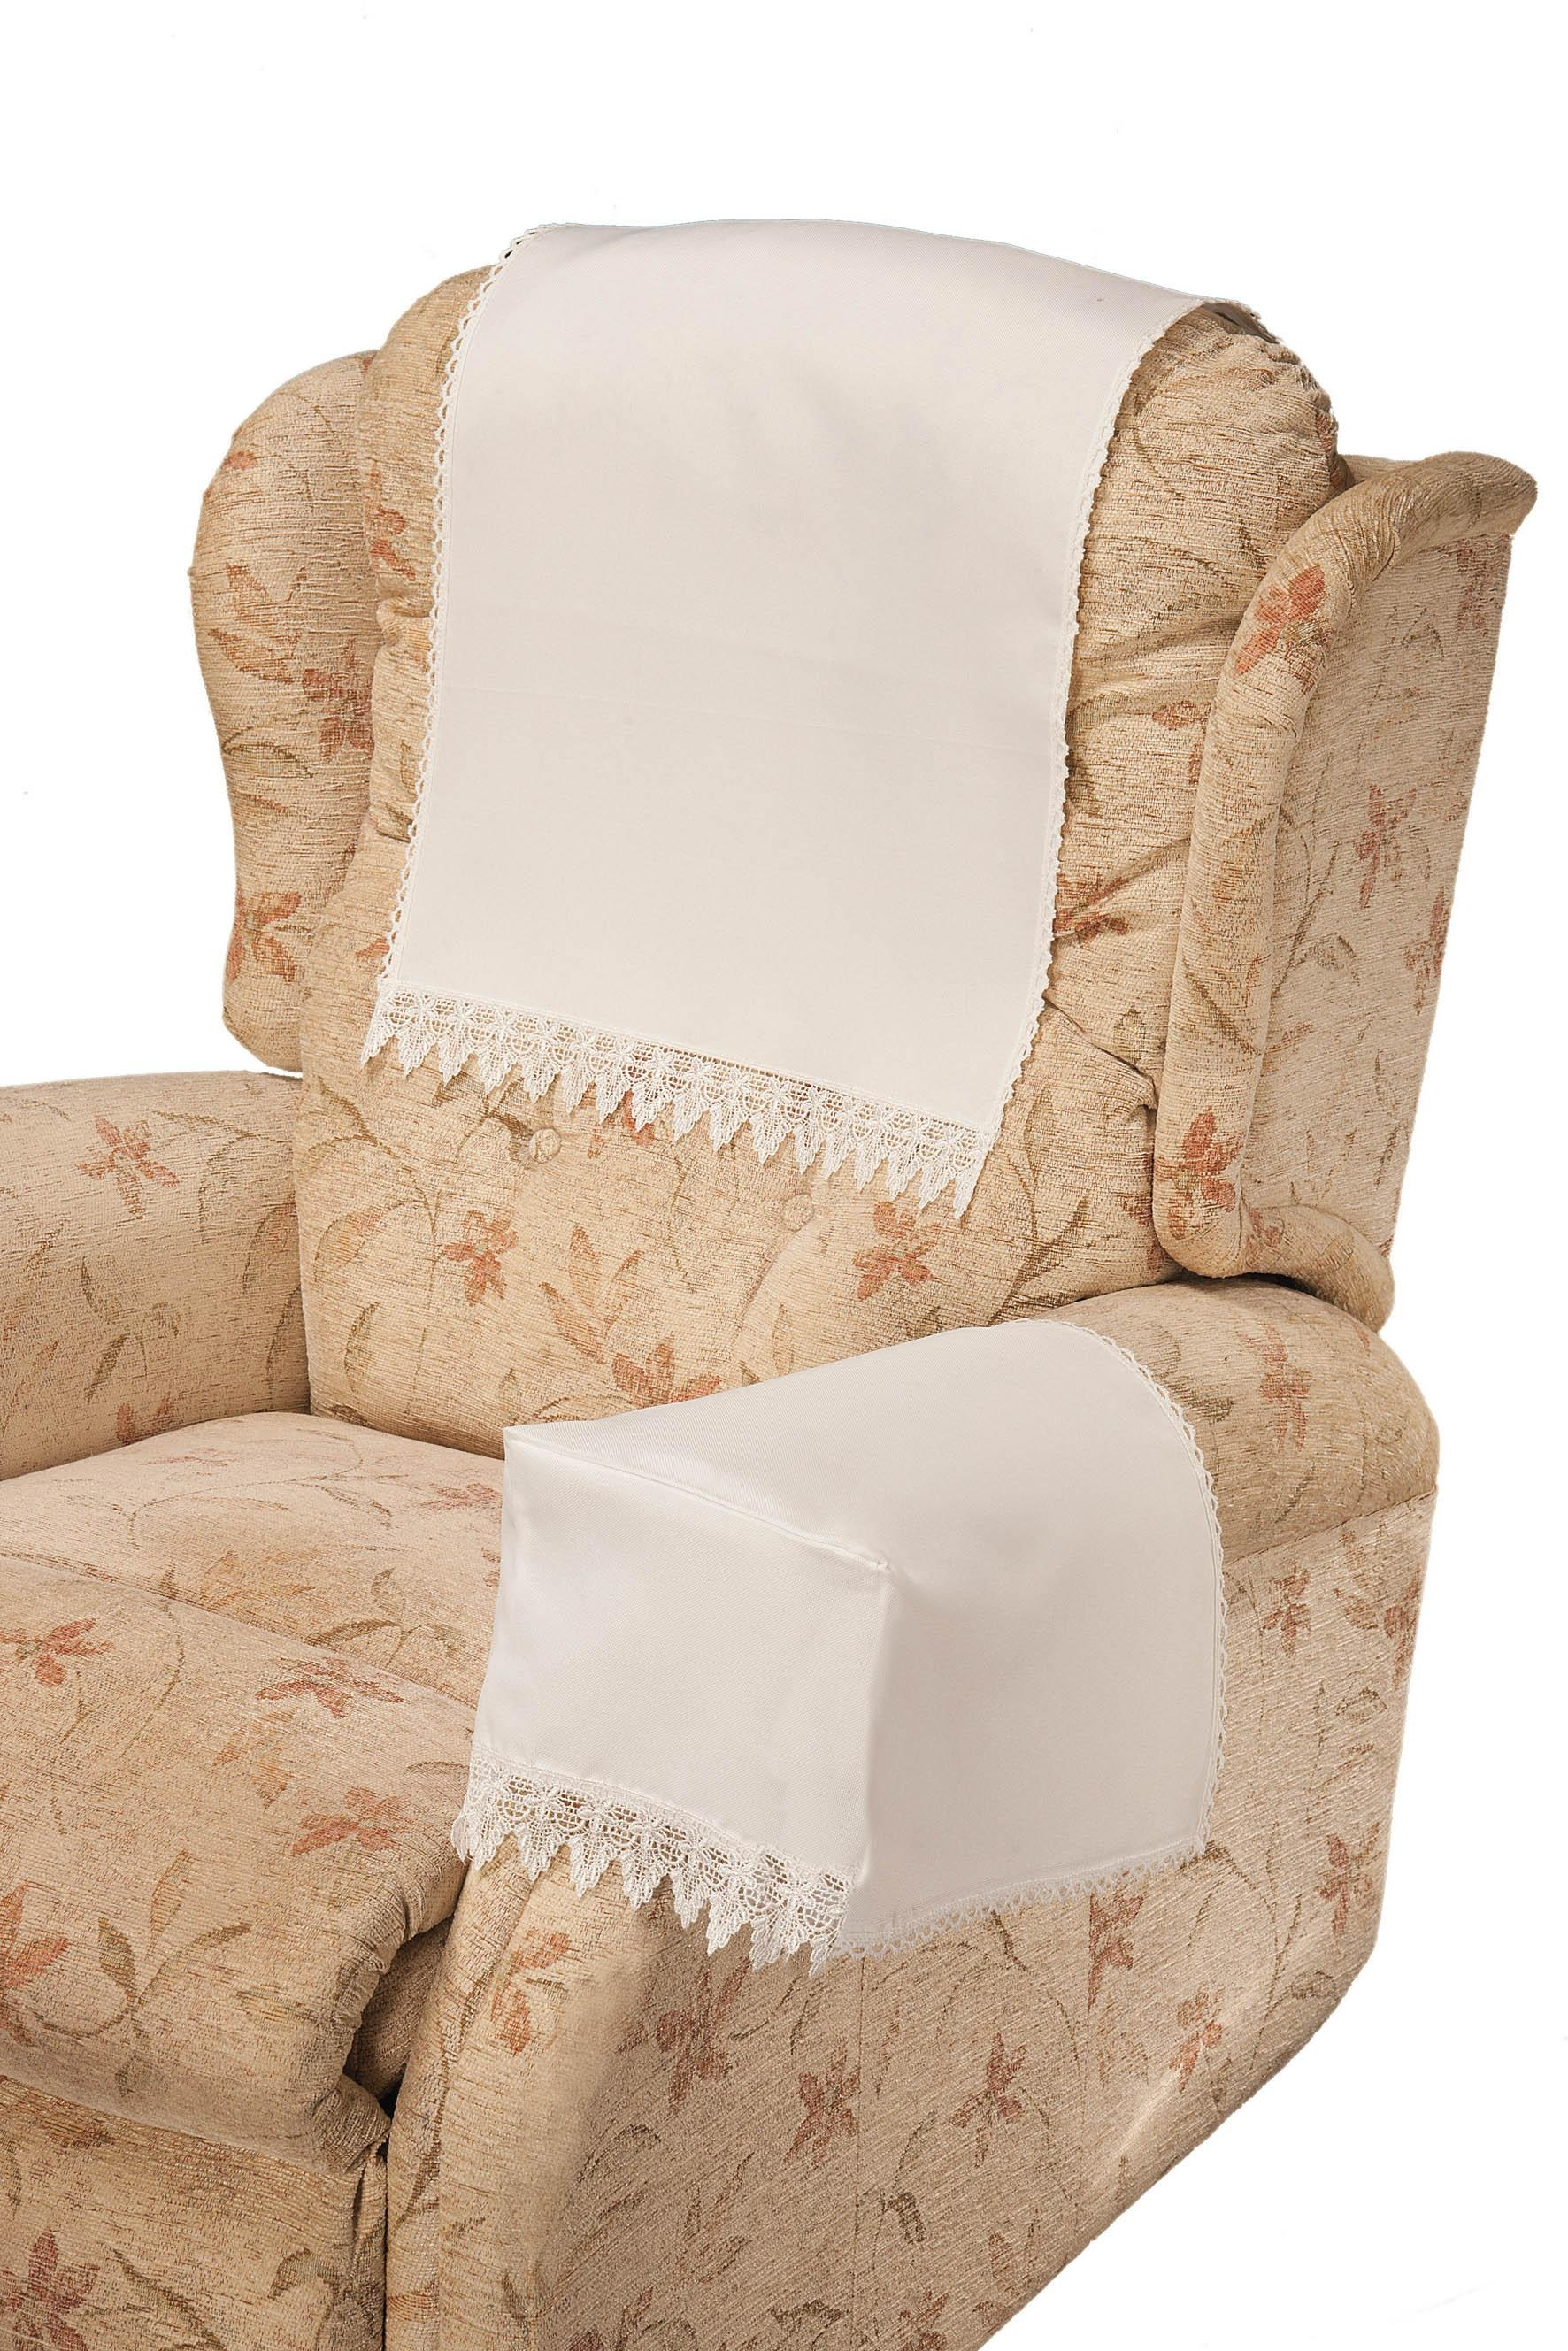 Wondrous Chair Armrest Covers 55 Leather Chair Arm Covers Sale Regarding Armchair Armrest Covers (View 3 of 20)